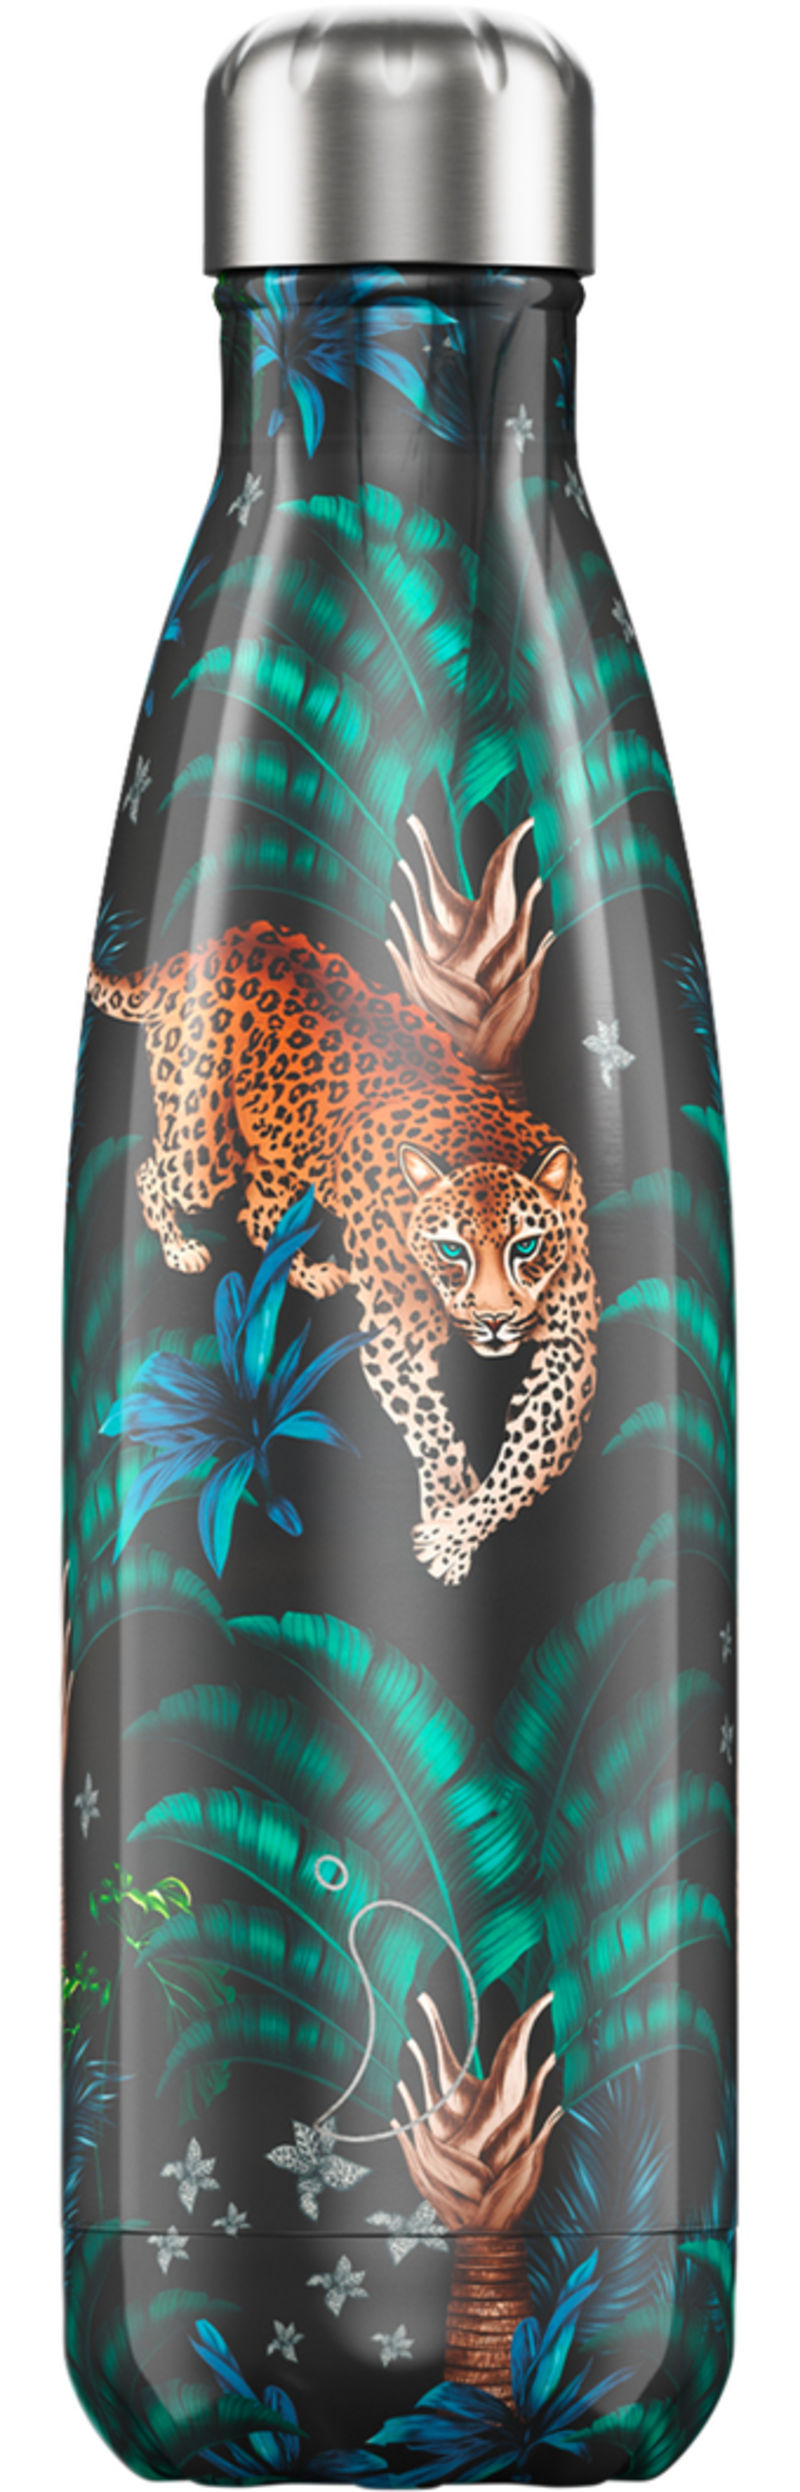 BOTELLA INOX LEOPARDO 500ML